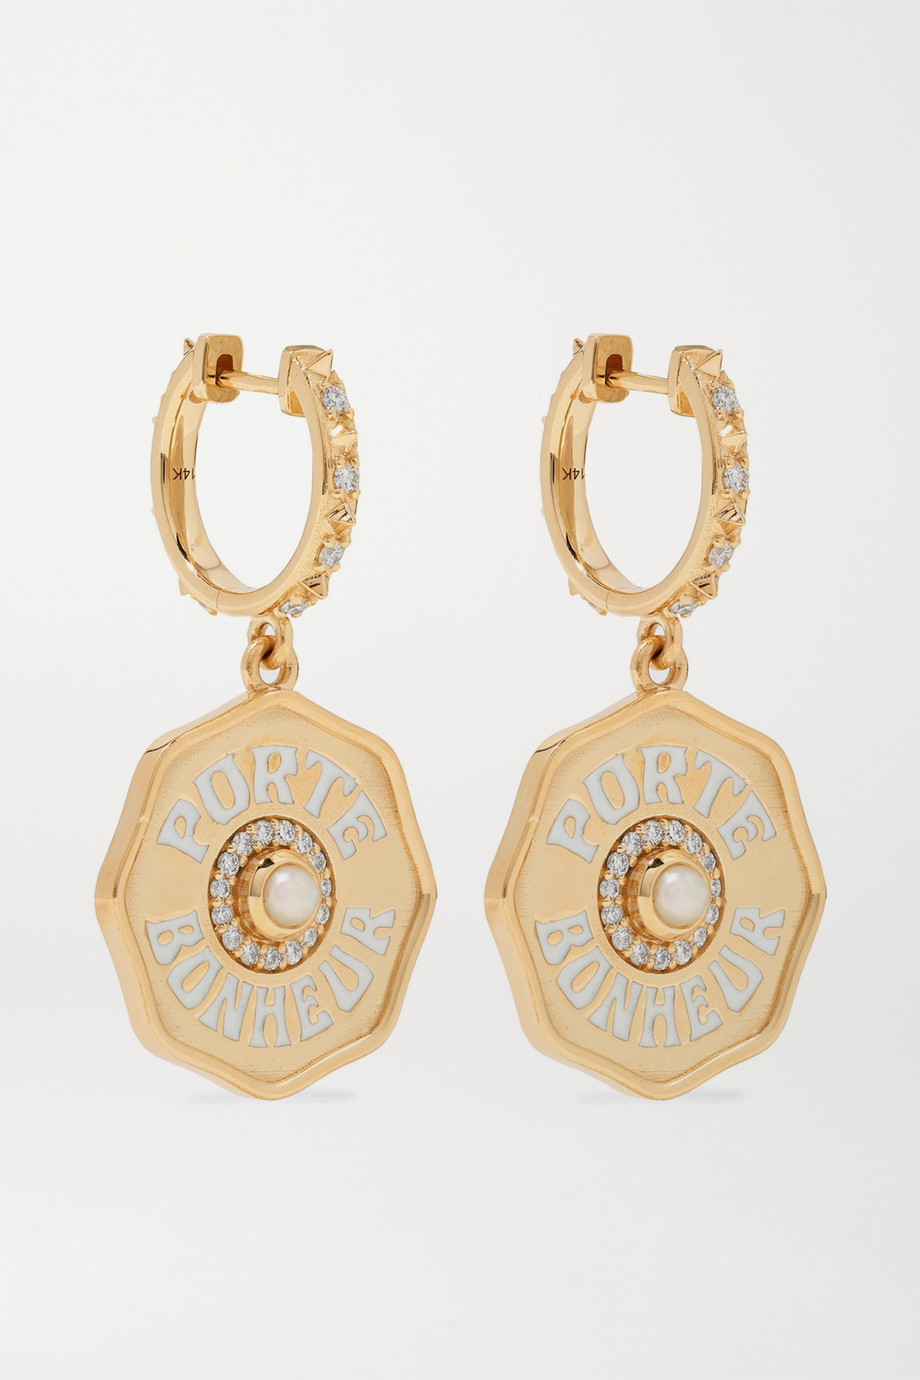 Marlo Laz Mini Porte Bonheur 14-karat gold, enamel, pearl and diamond earrings